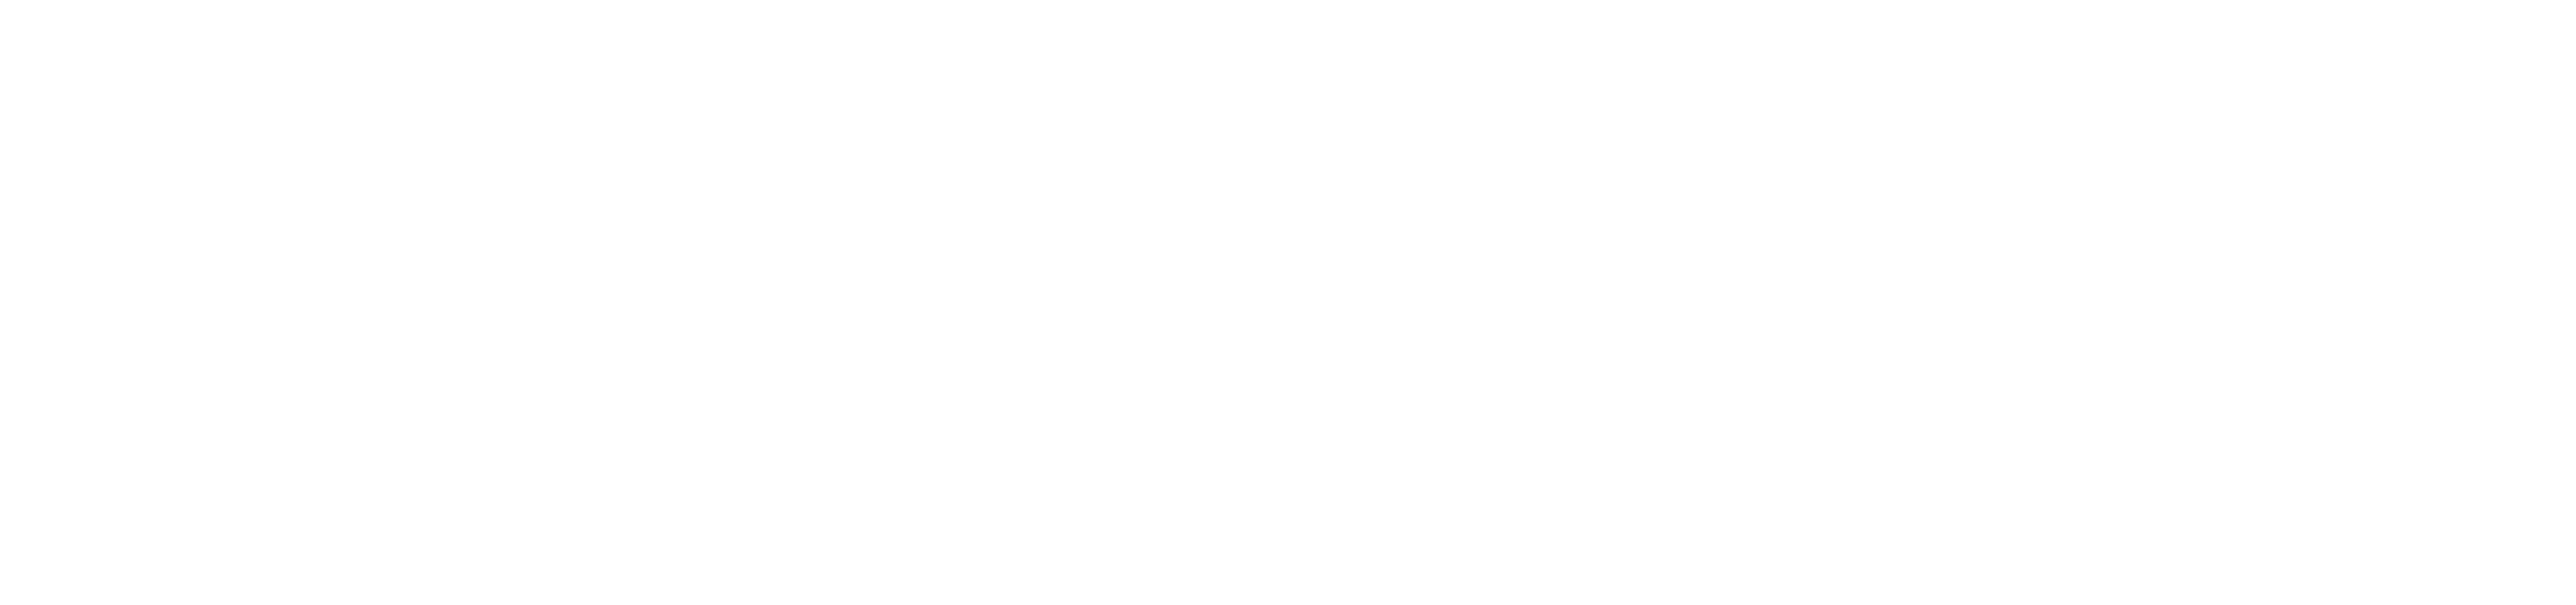 Wellington Youth Events Society Incorporated